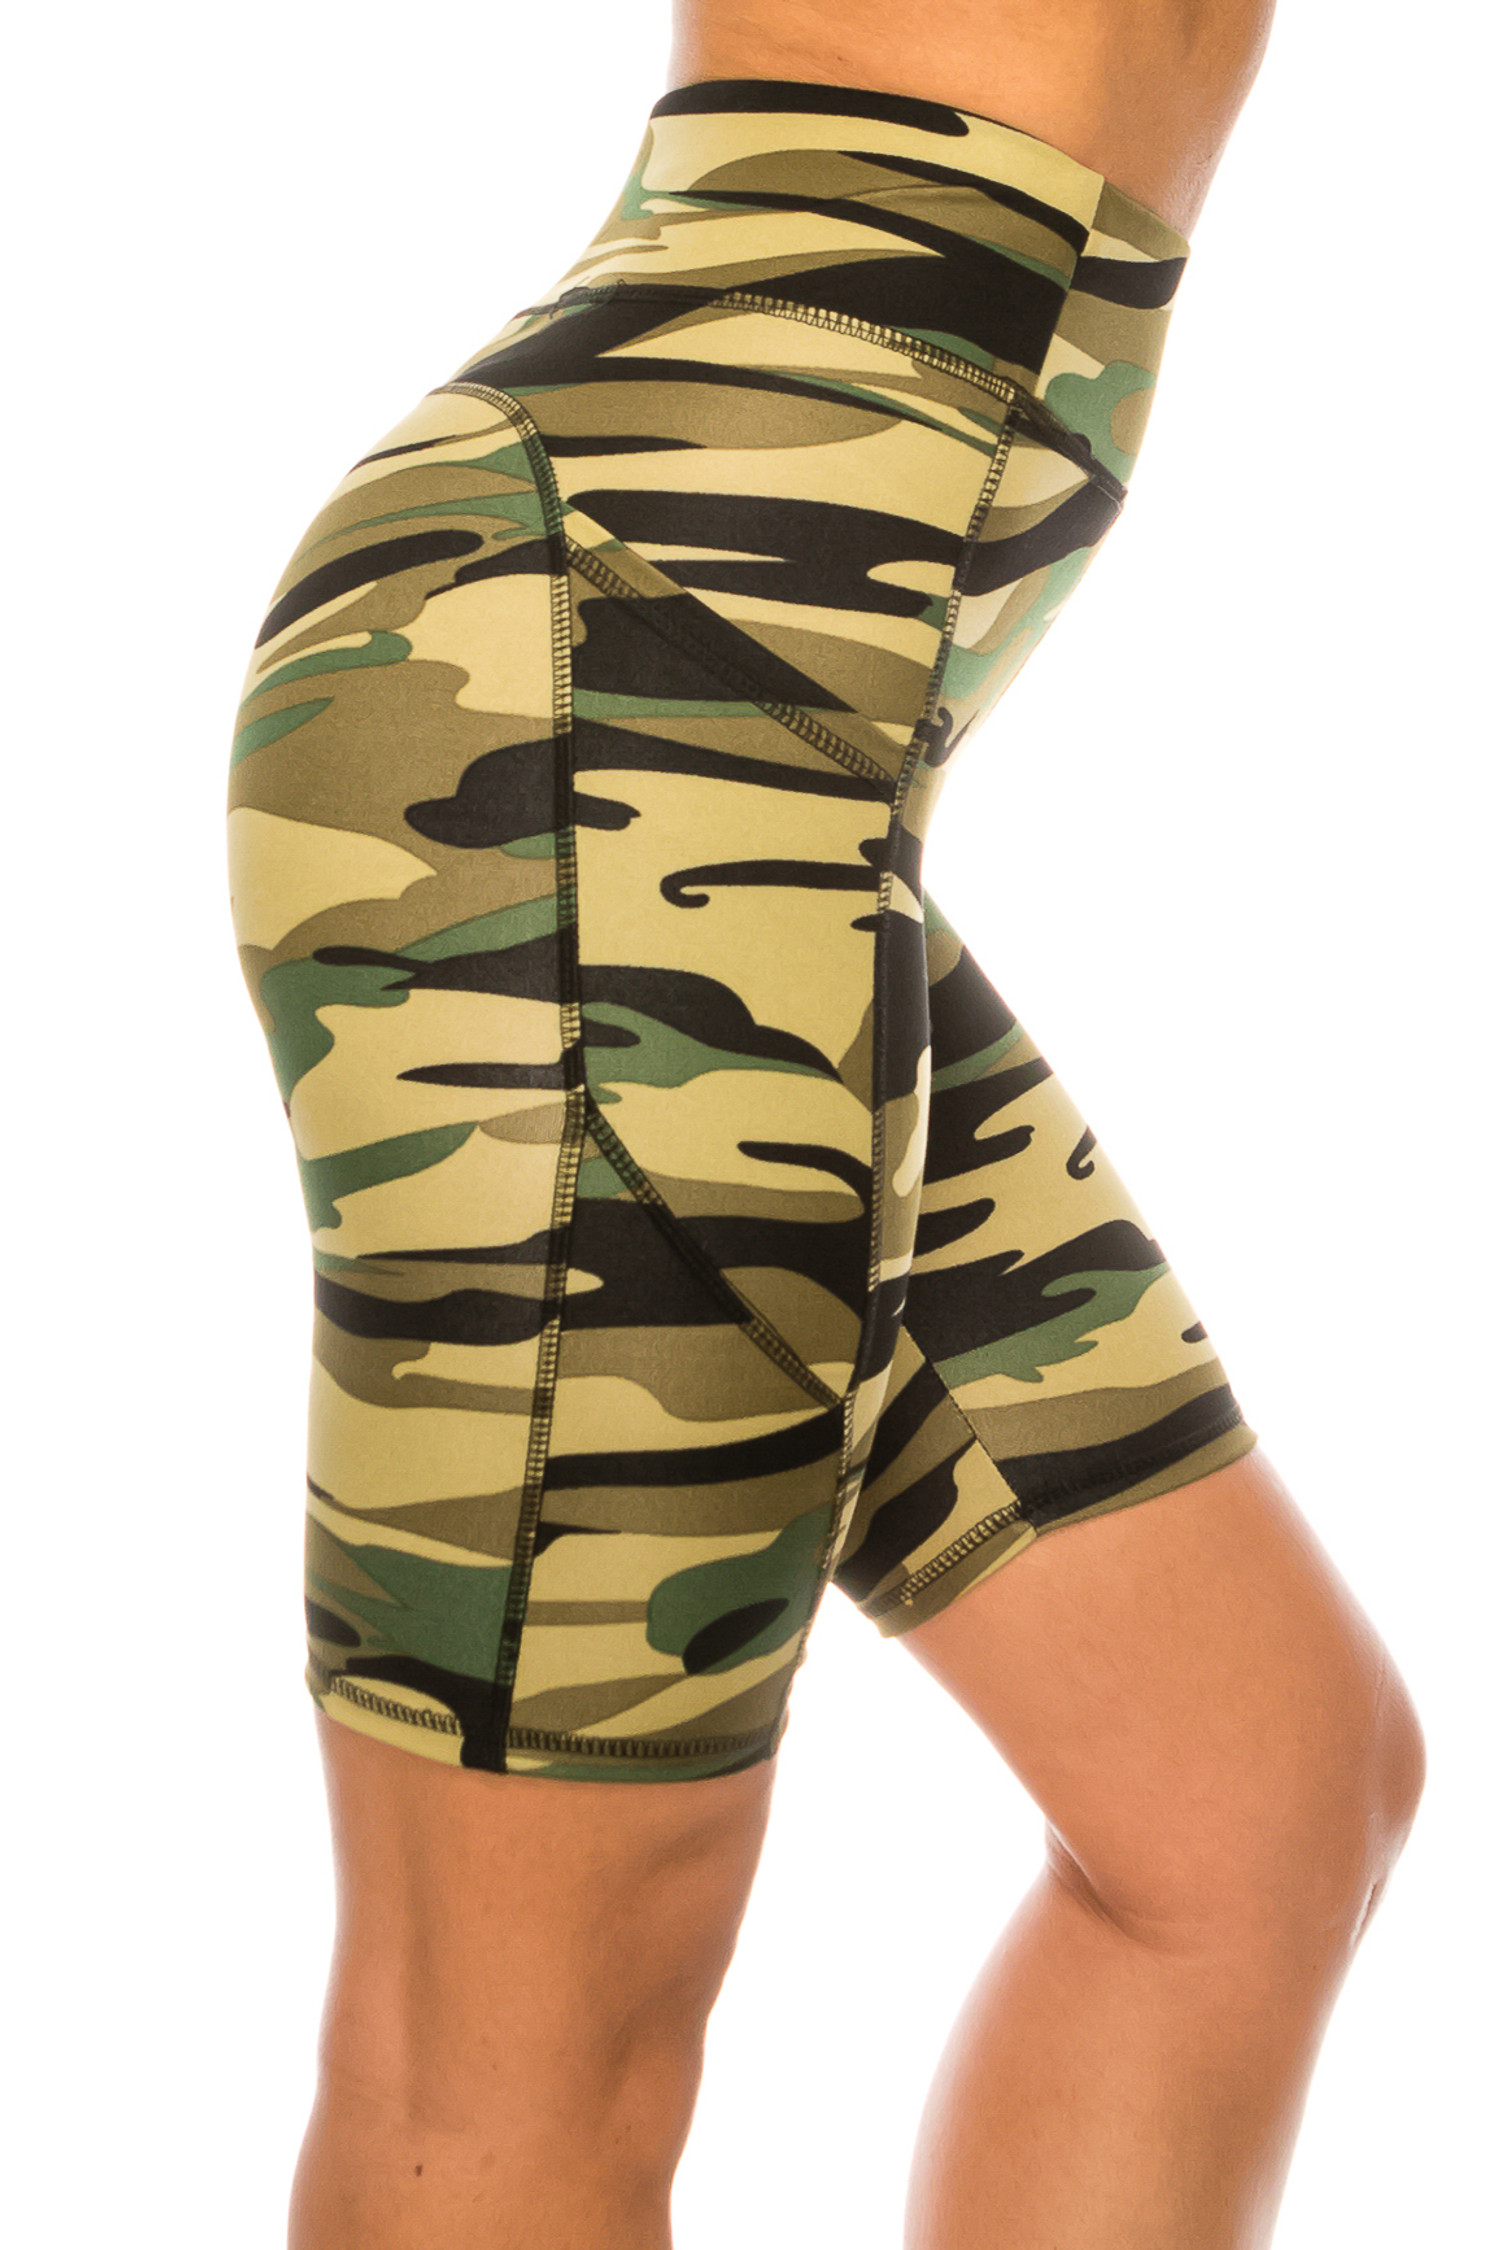 Green Camouflage High Waist Biker Sport Shorts with Pockets